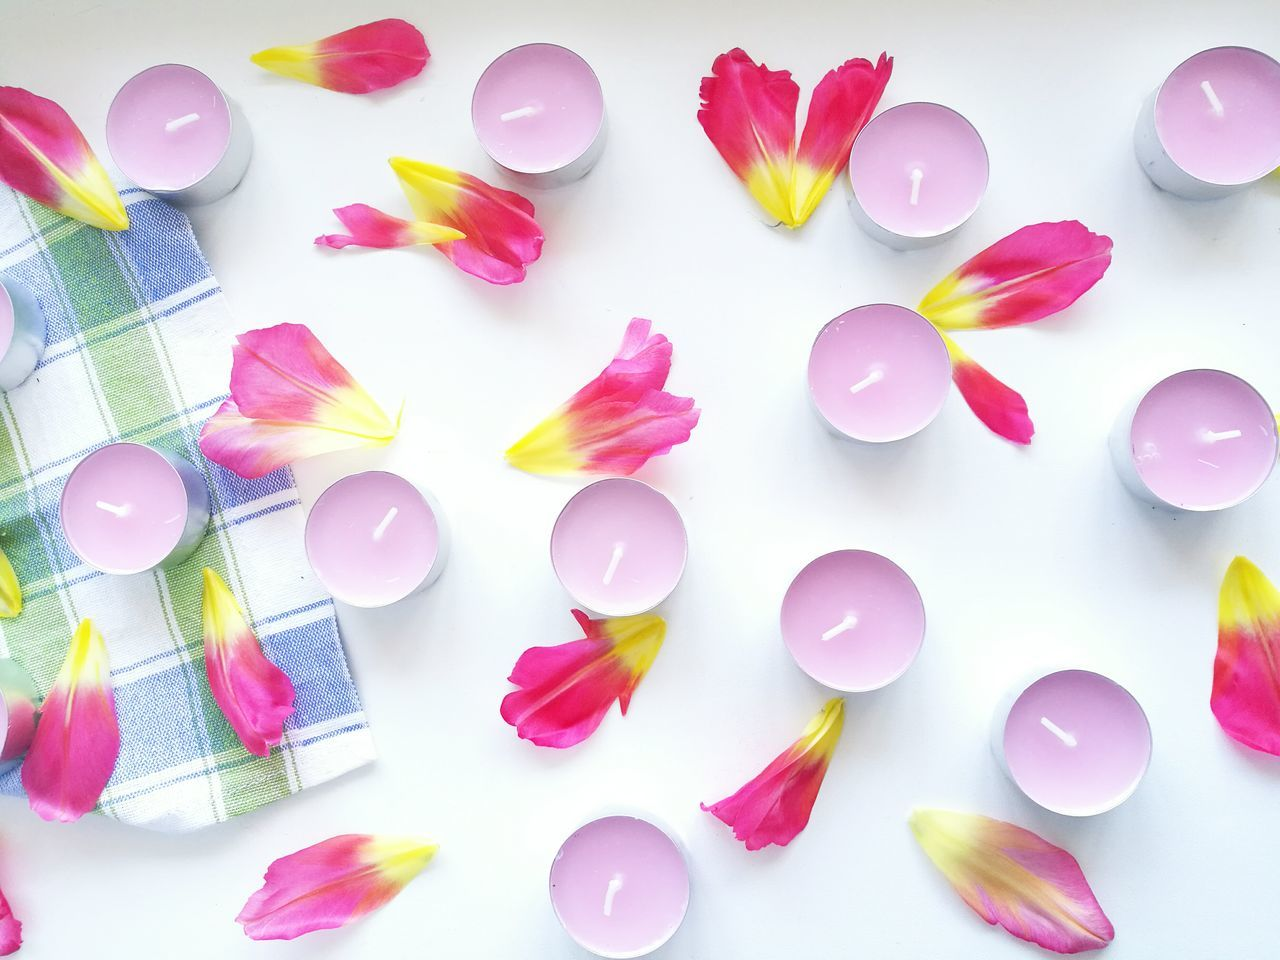 Large Group Of Objects Flower Petals🌸 Tulips🌷 Pink Color Composition Backgrounds Millennial Pink